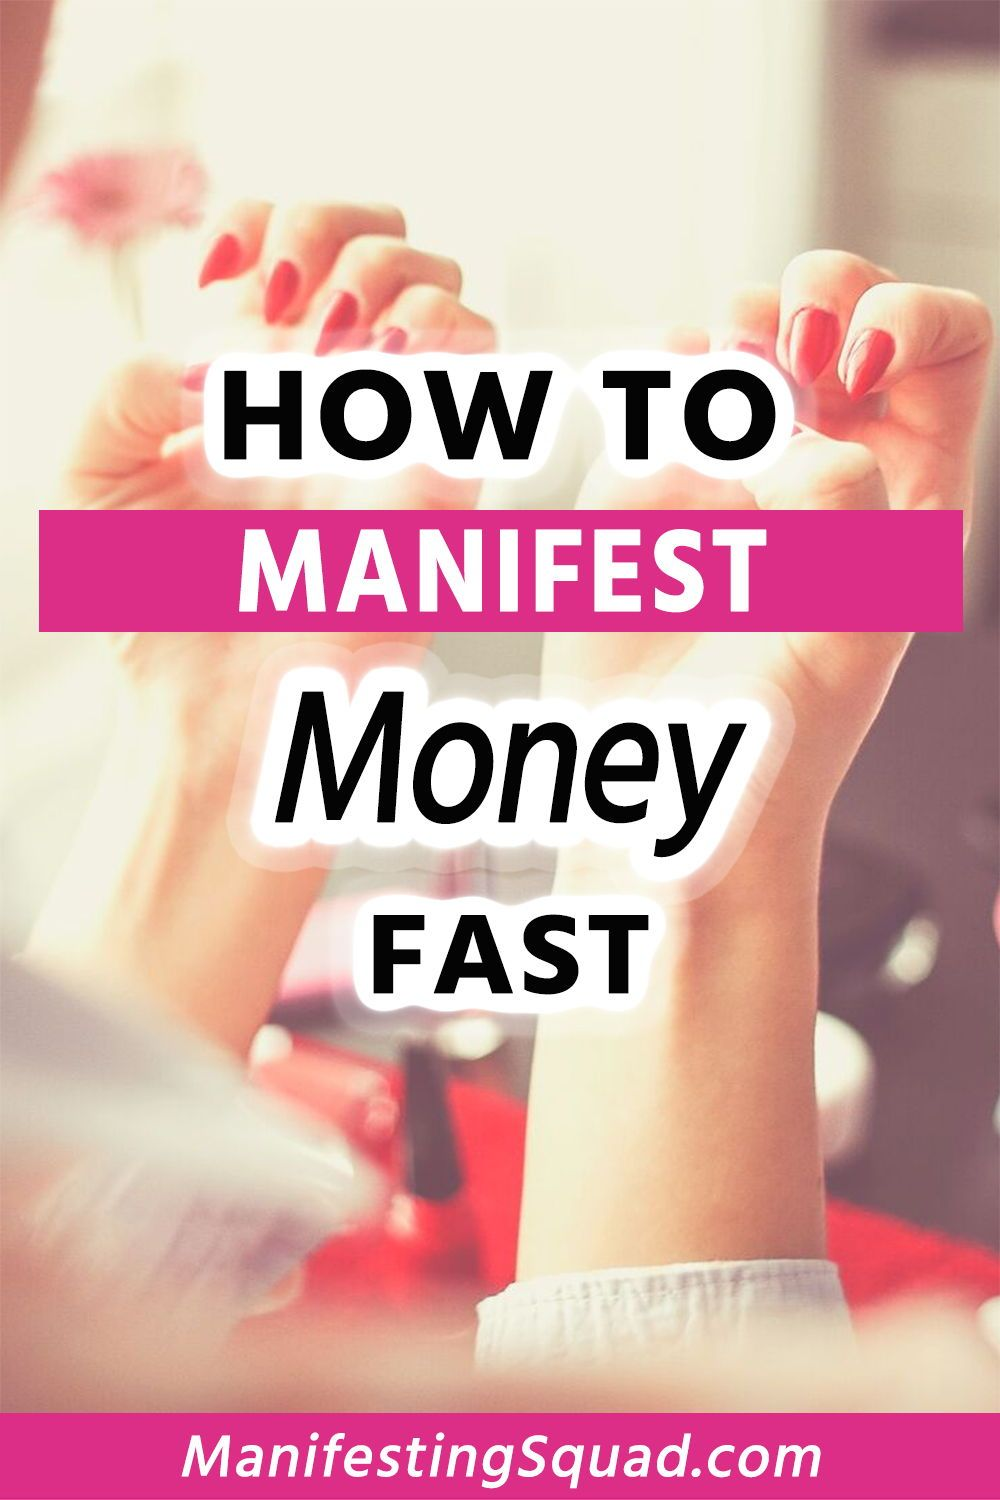 How To Manifest Money Fast How to manifest, Manifesting